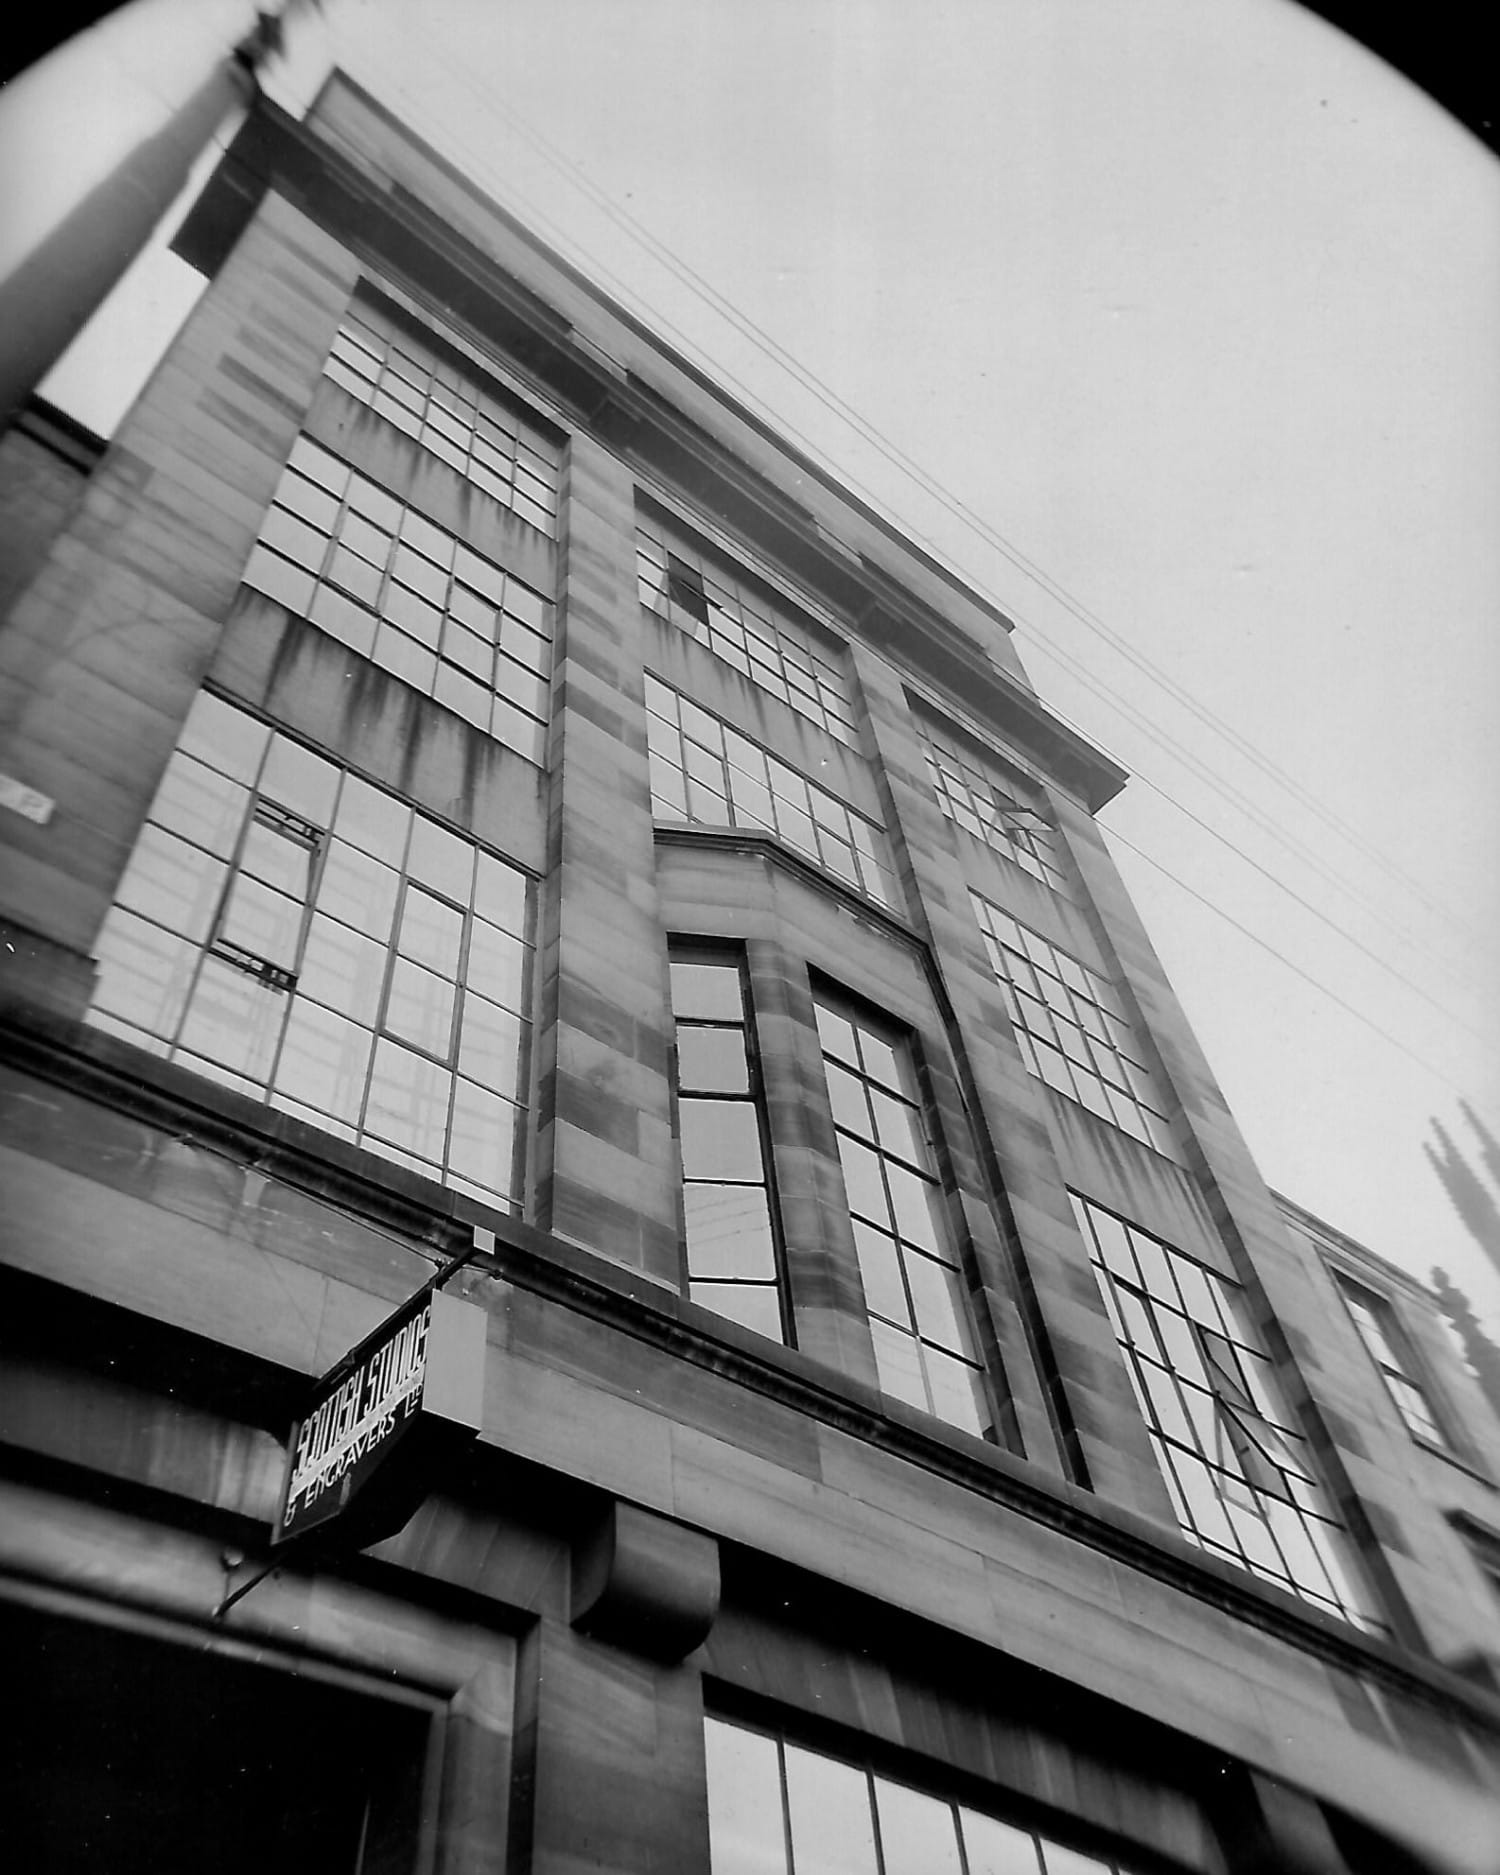 The entry to the building - possibly 1930s/40s